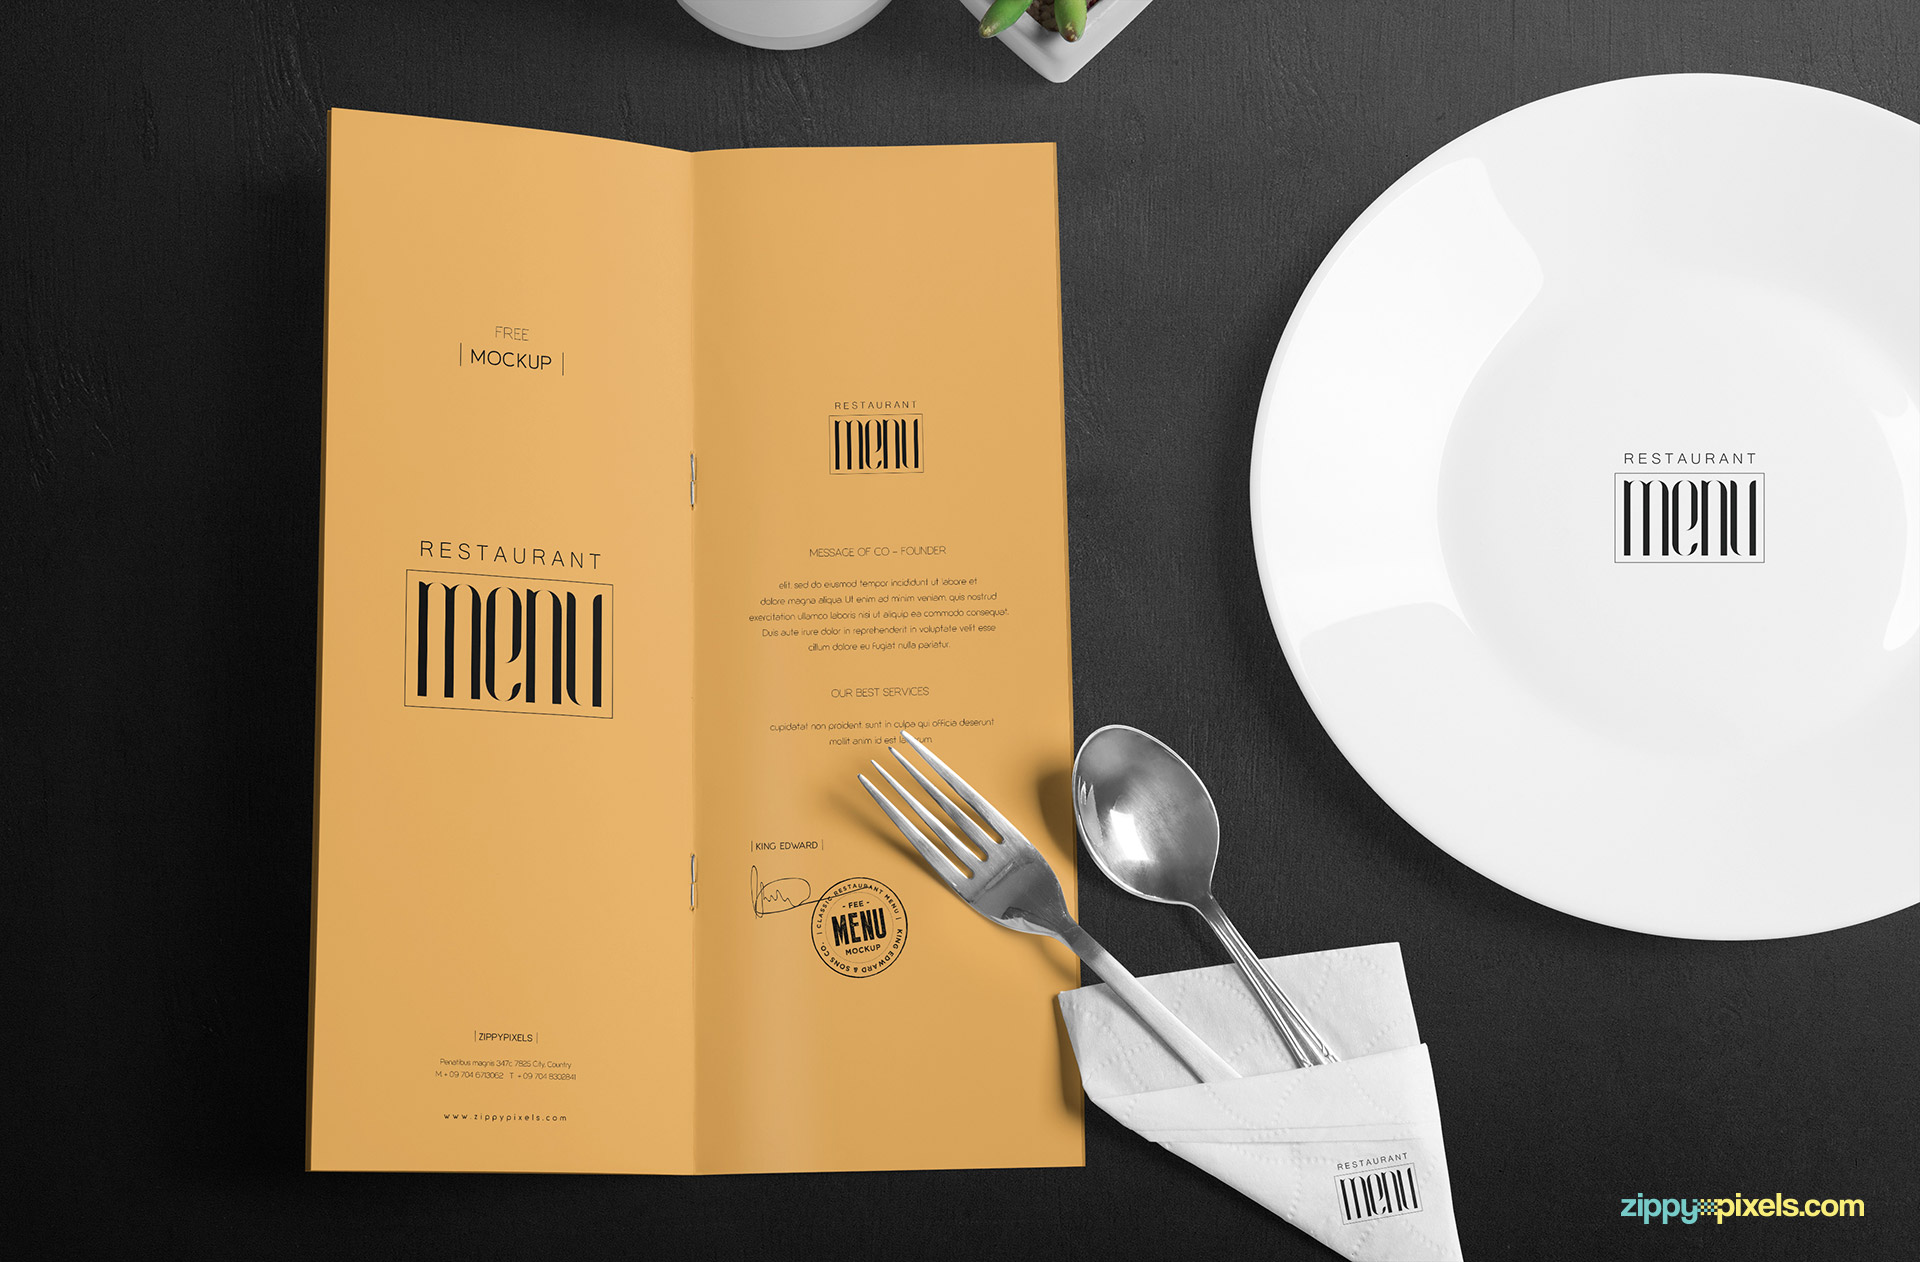 A complete dining table scene with the menu card, plate, cutlery and artificial plant pot.